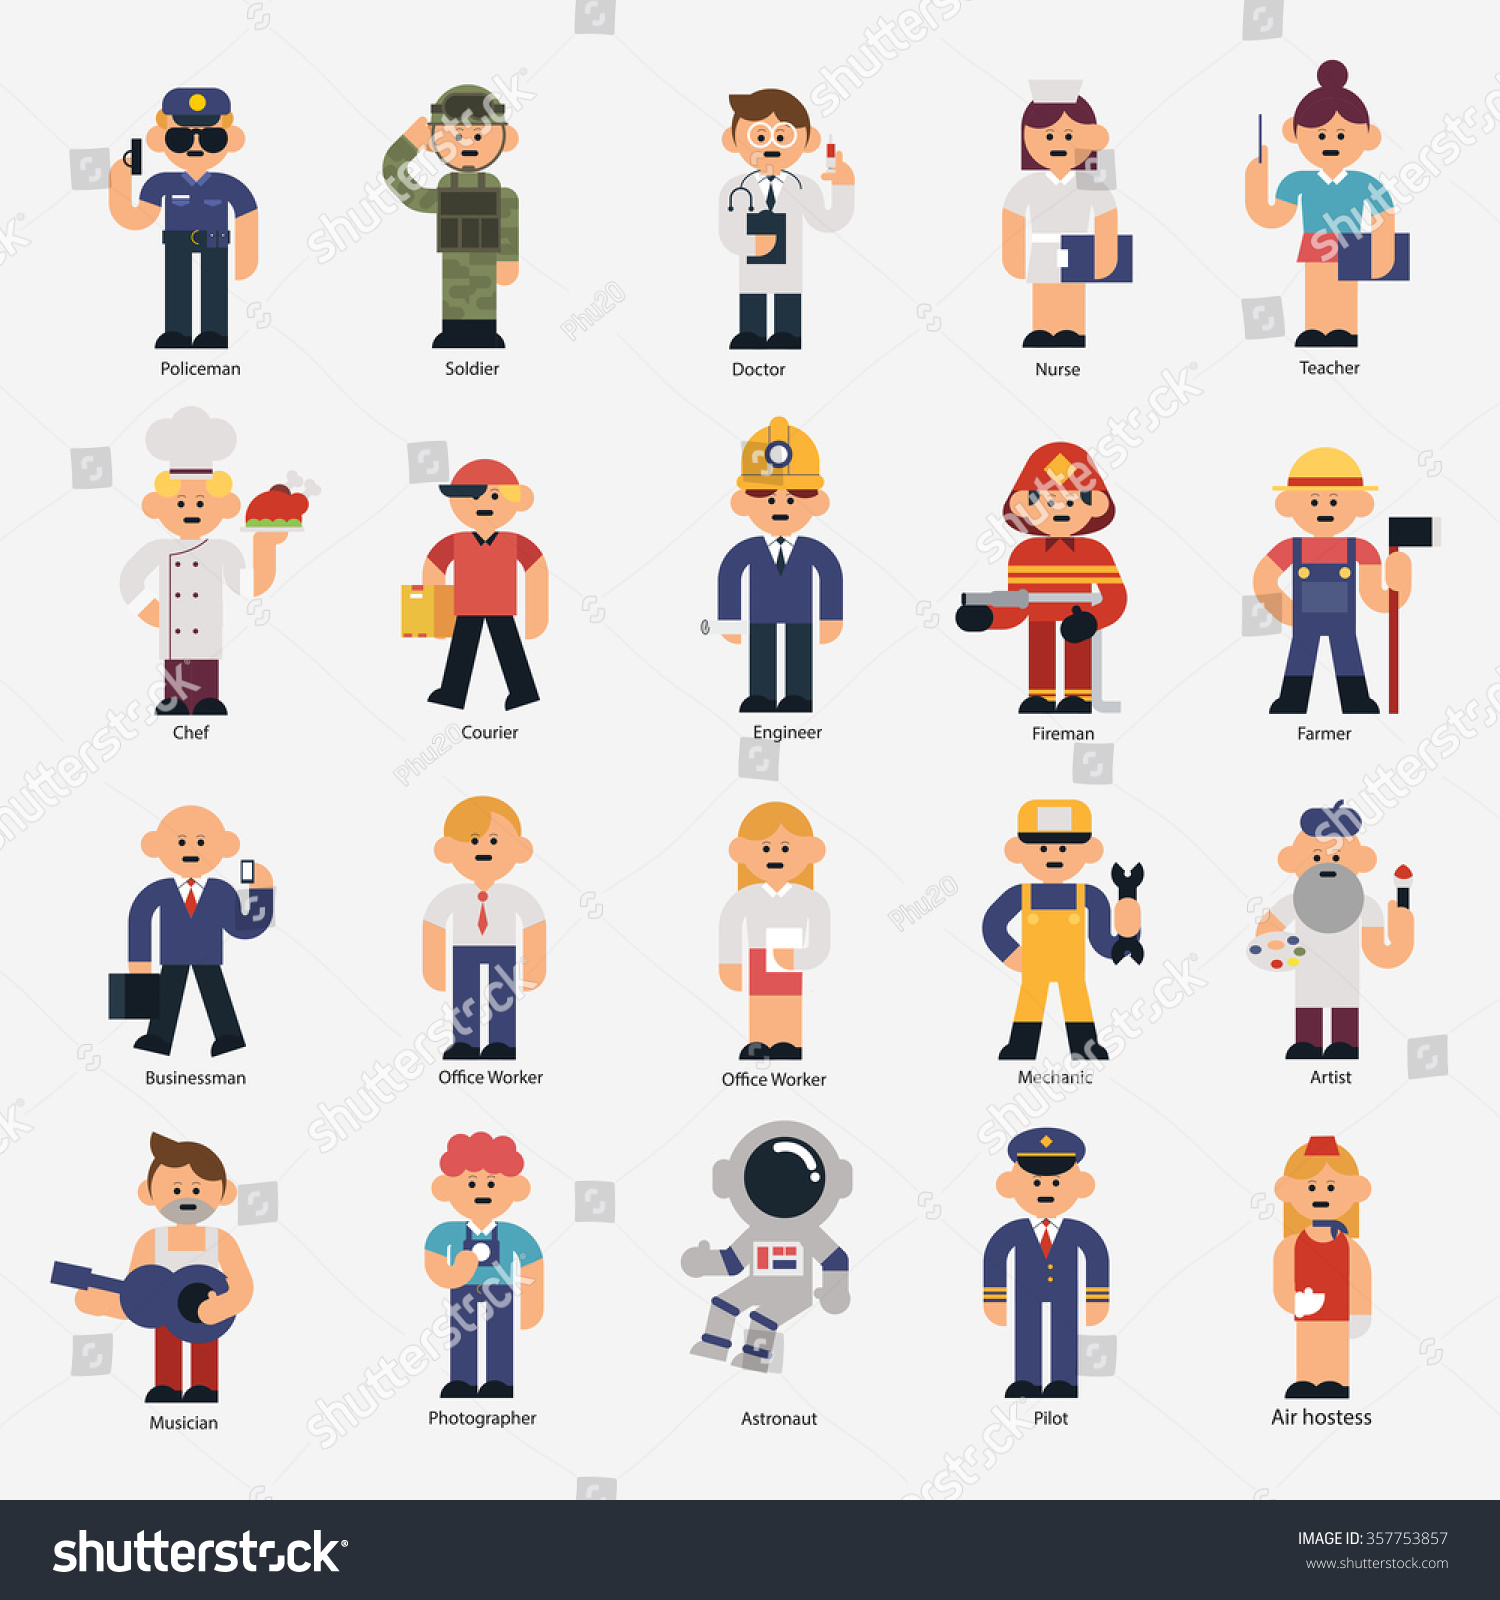 Carpenter Style House 20 Occupations Stock Vector 357753857 Shutterstock